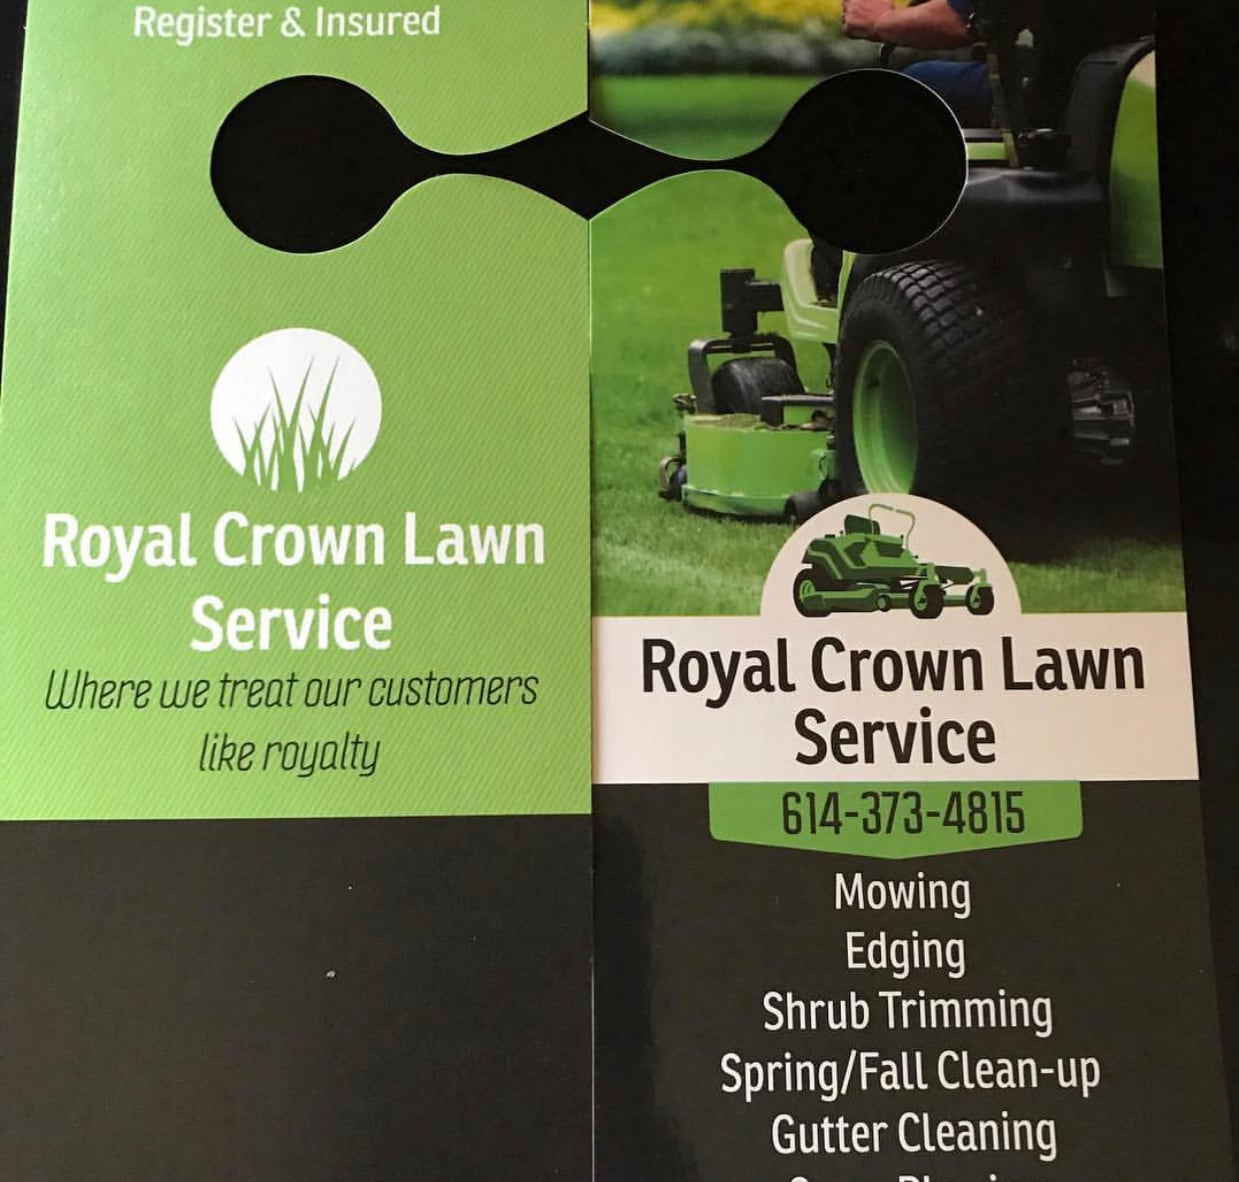 Royal Crown Lawn Service,LLC